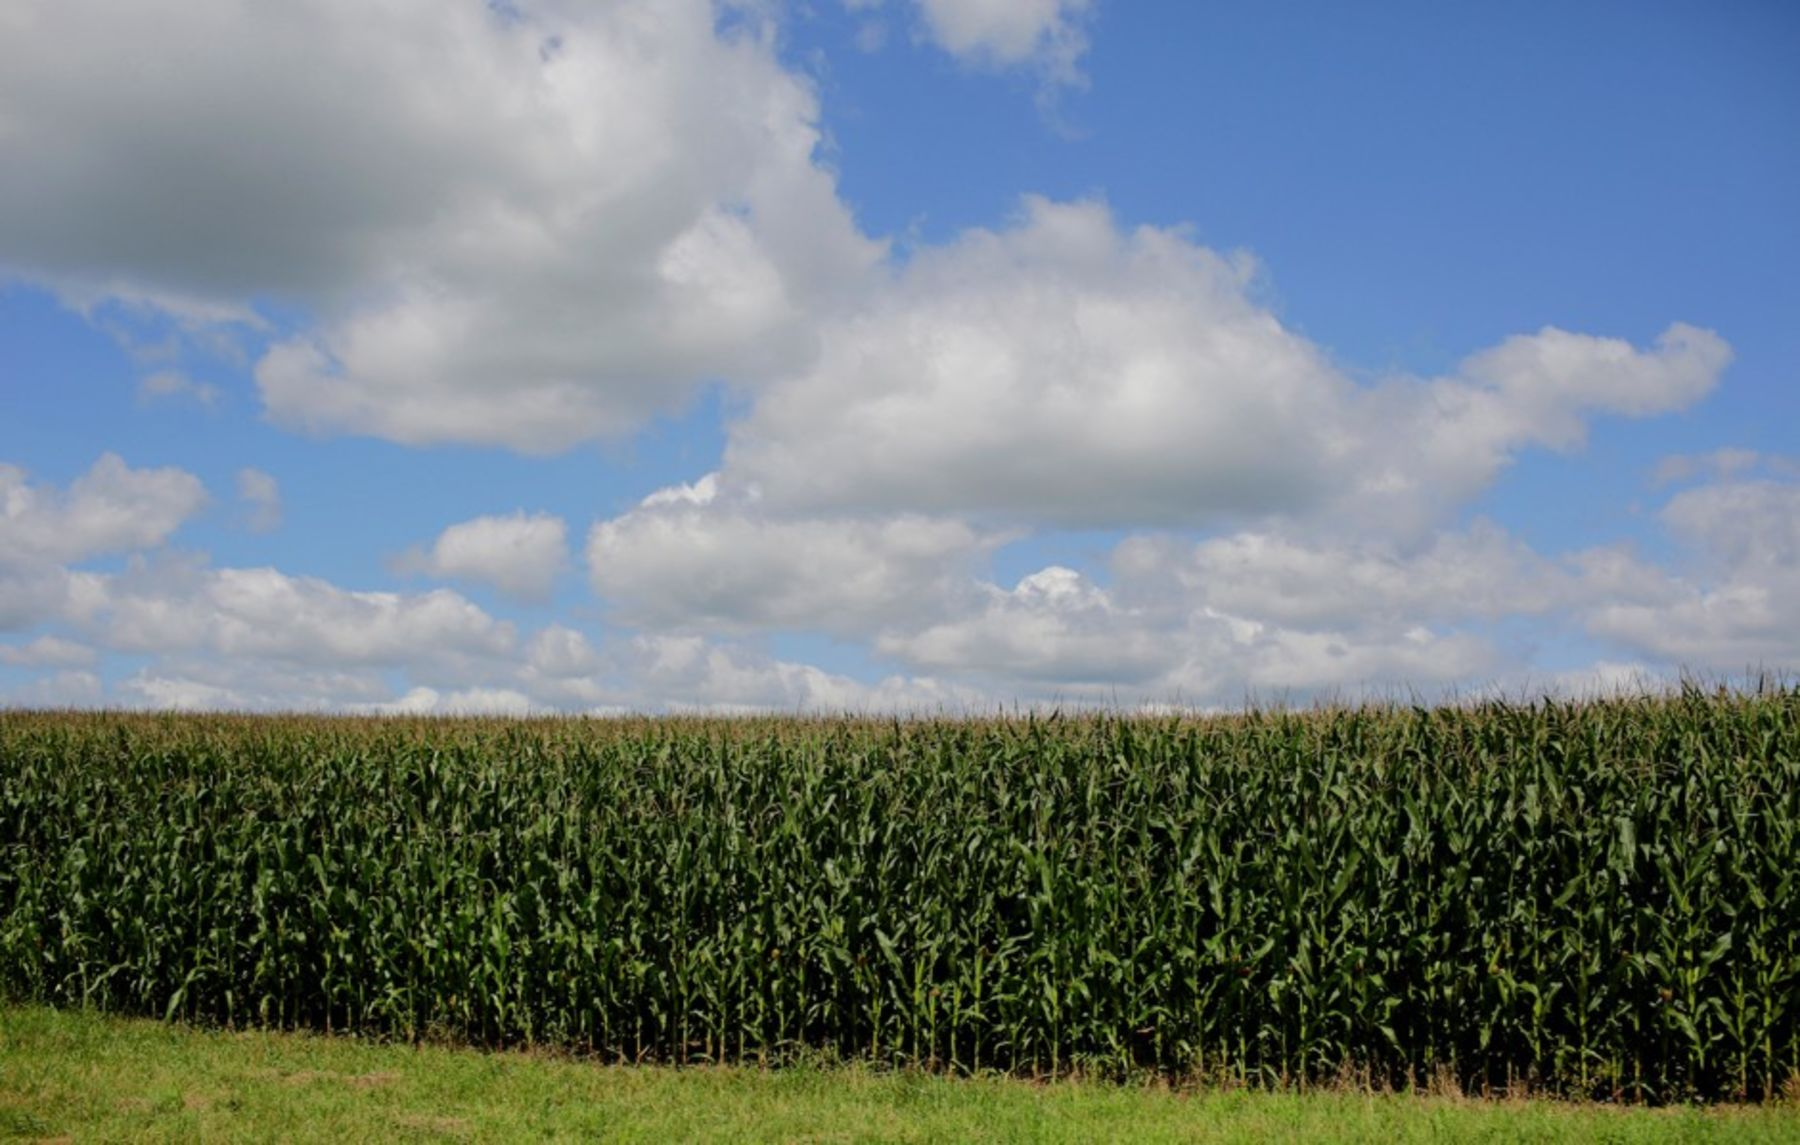 """Corn Sweat"" Compounds Humidity in Sweltering Midwest States"